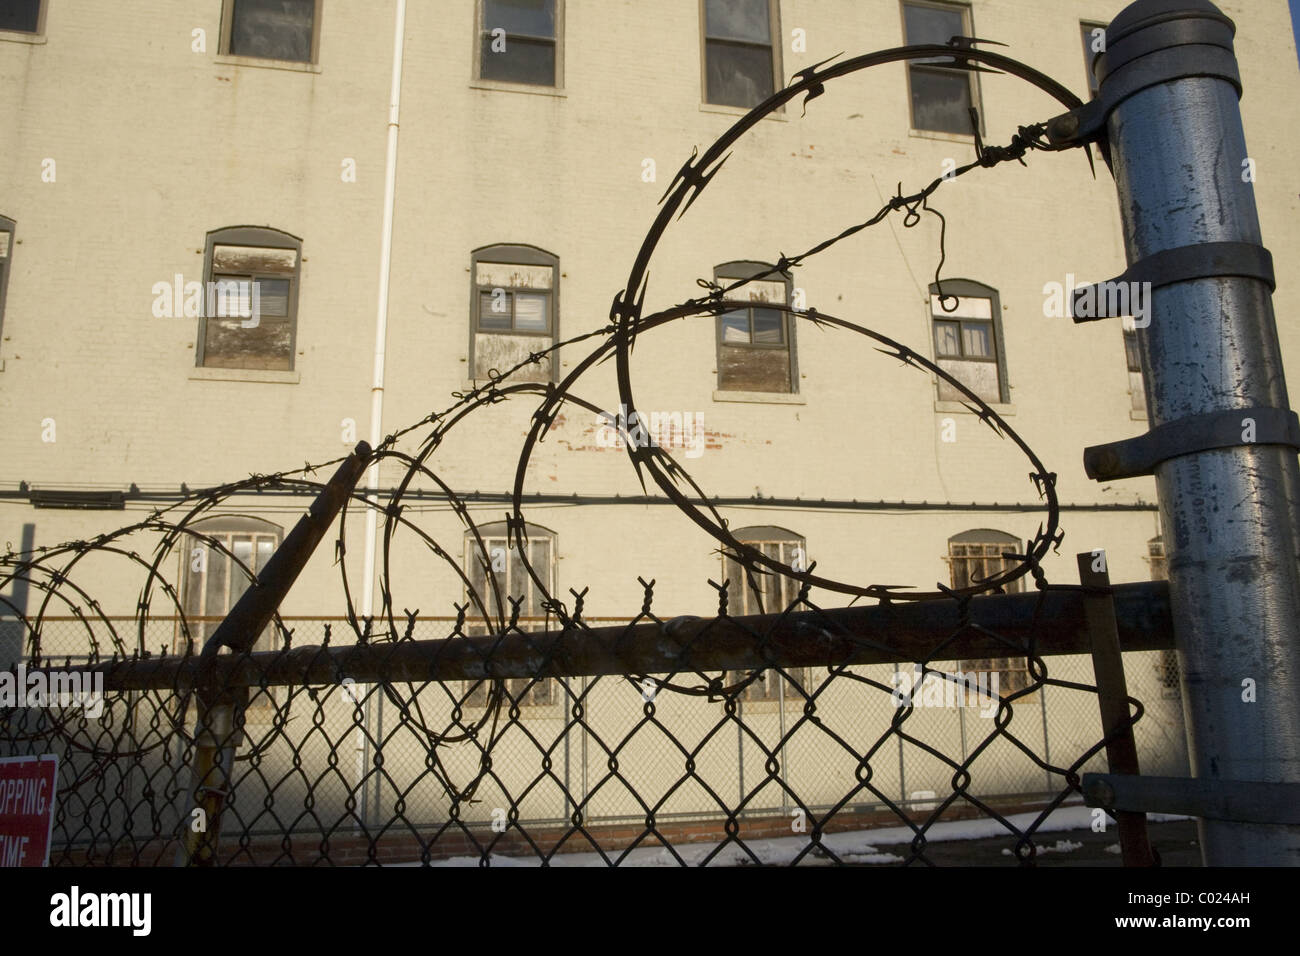 Barbed wire fence surrounding apartment building parking lot. - Stock Image